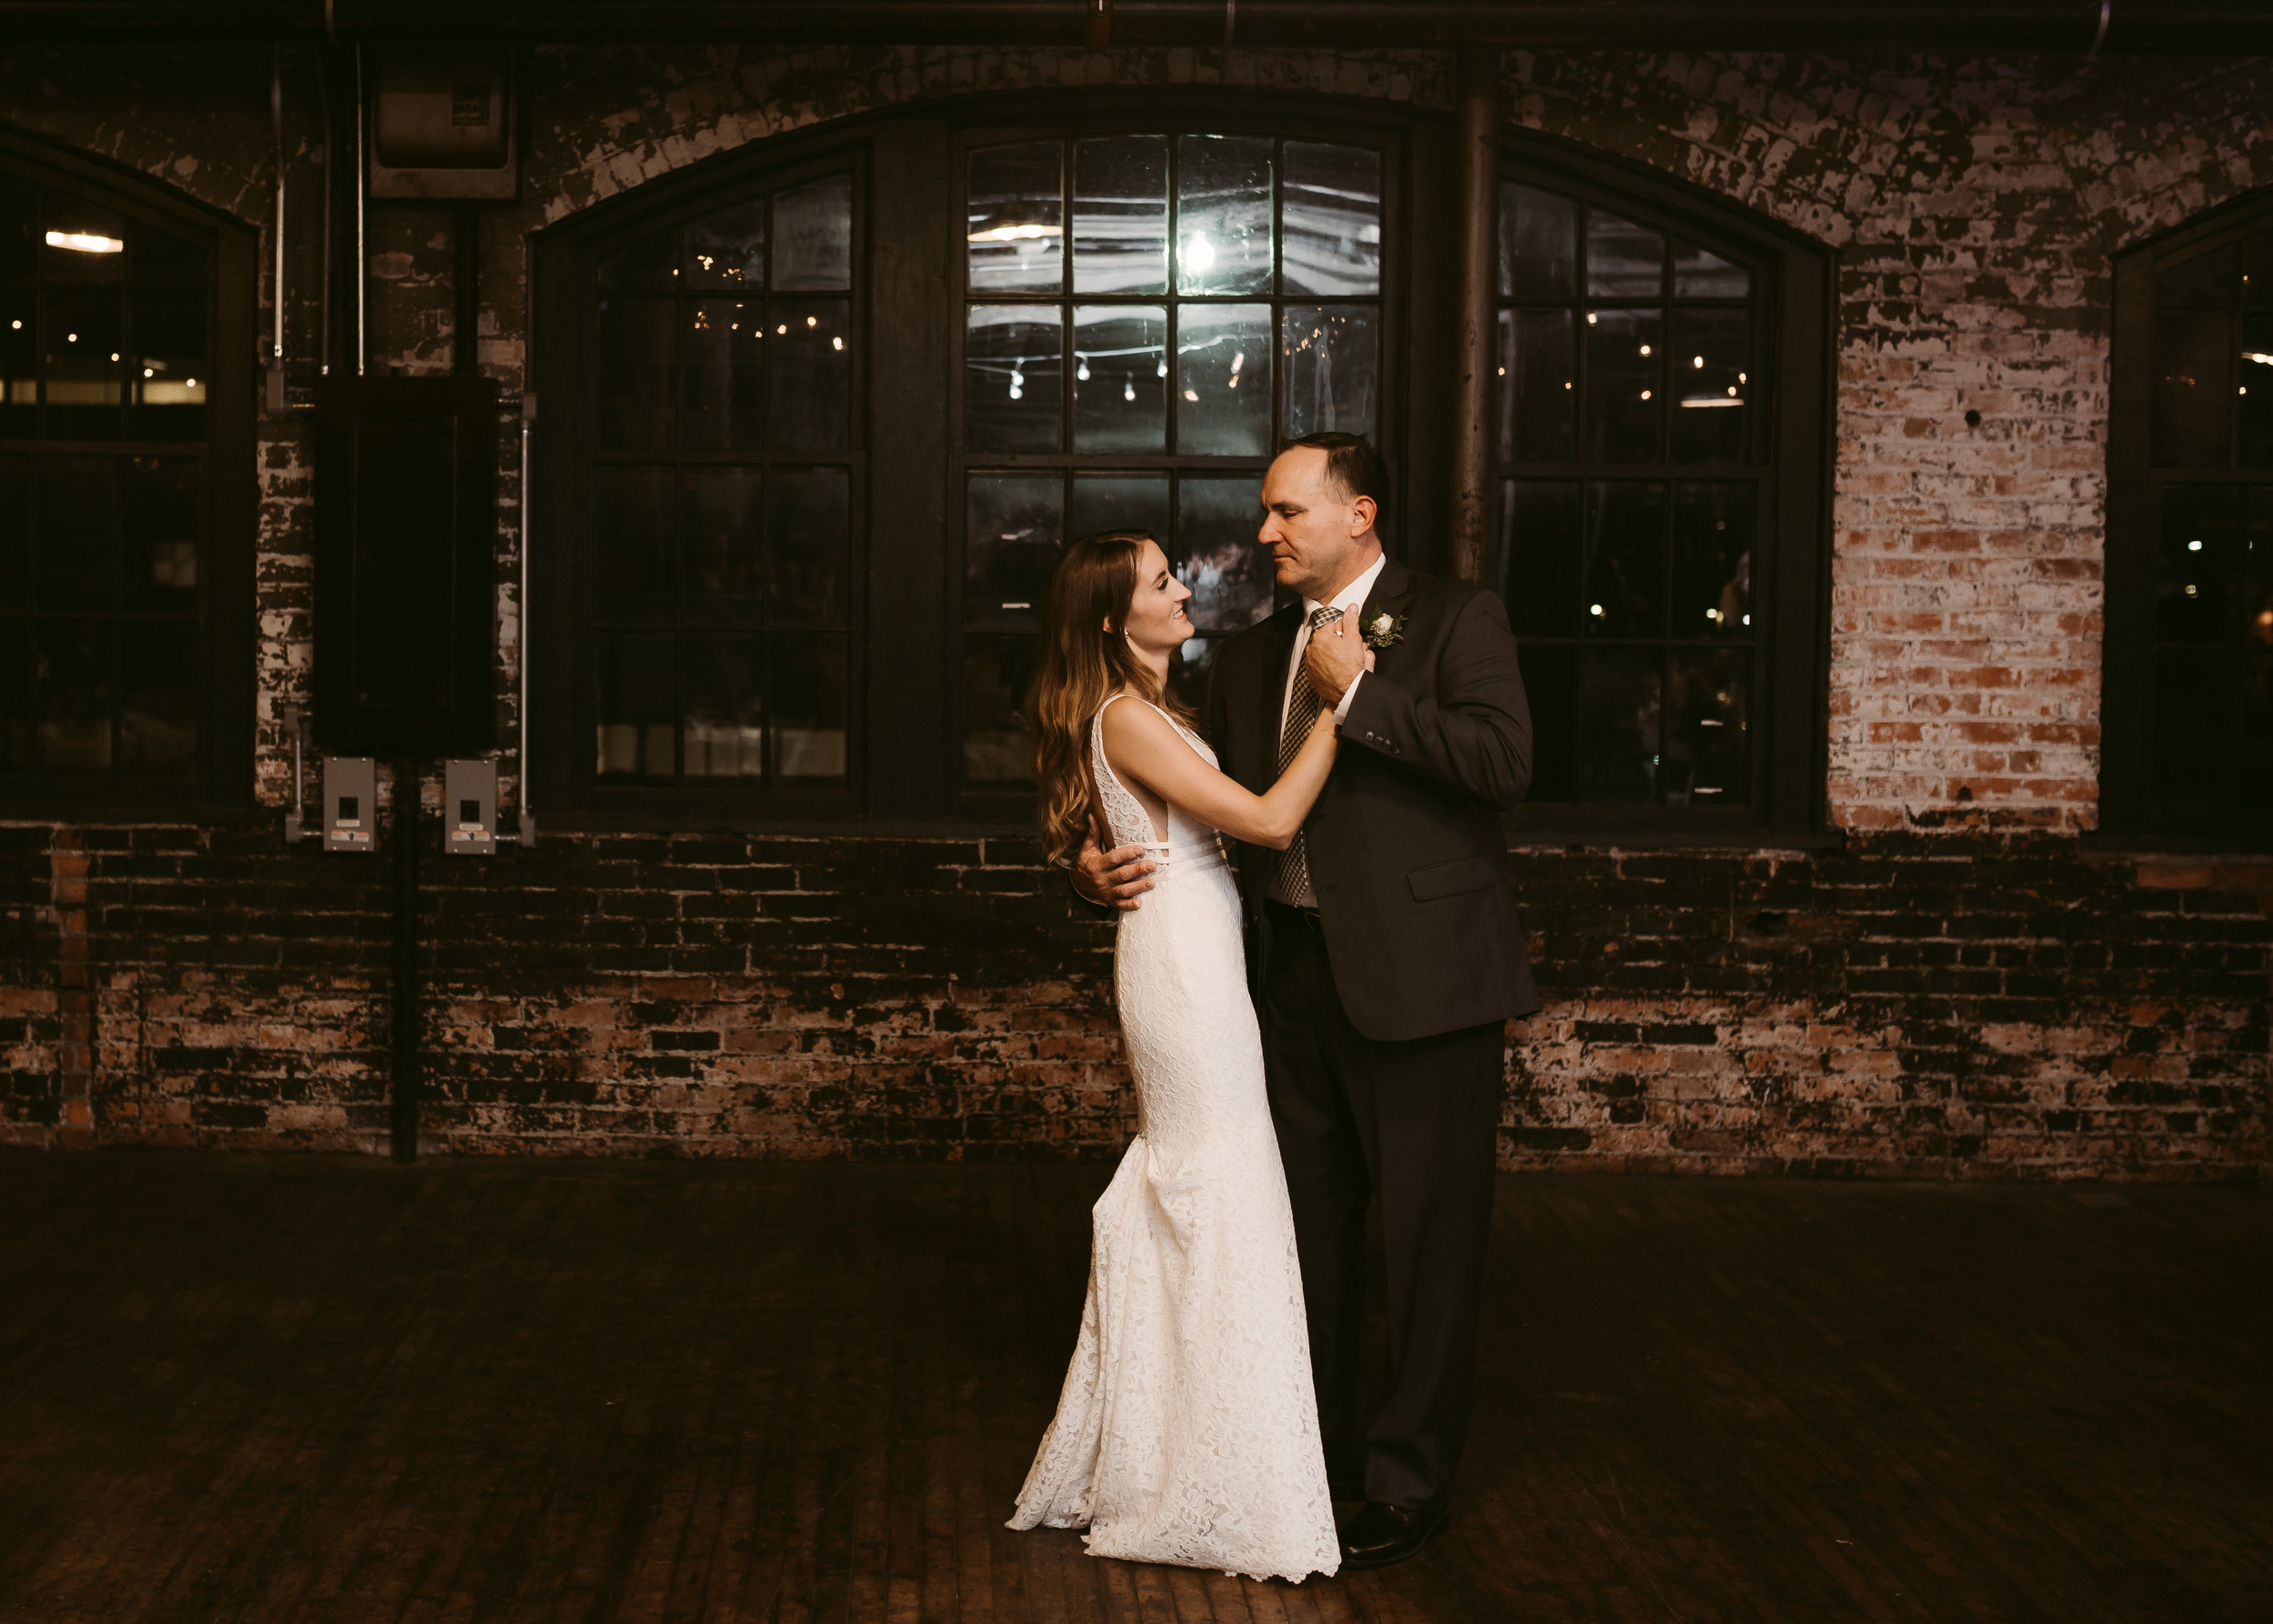 Katie_Vonasek_Photography_Ford_Piquette_Plant_Wedding_Detroit104.JPG